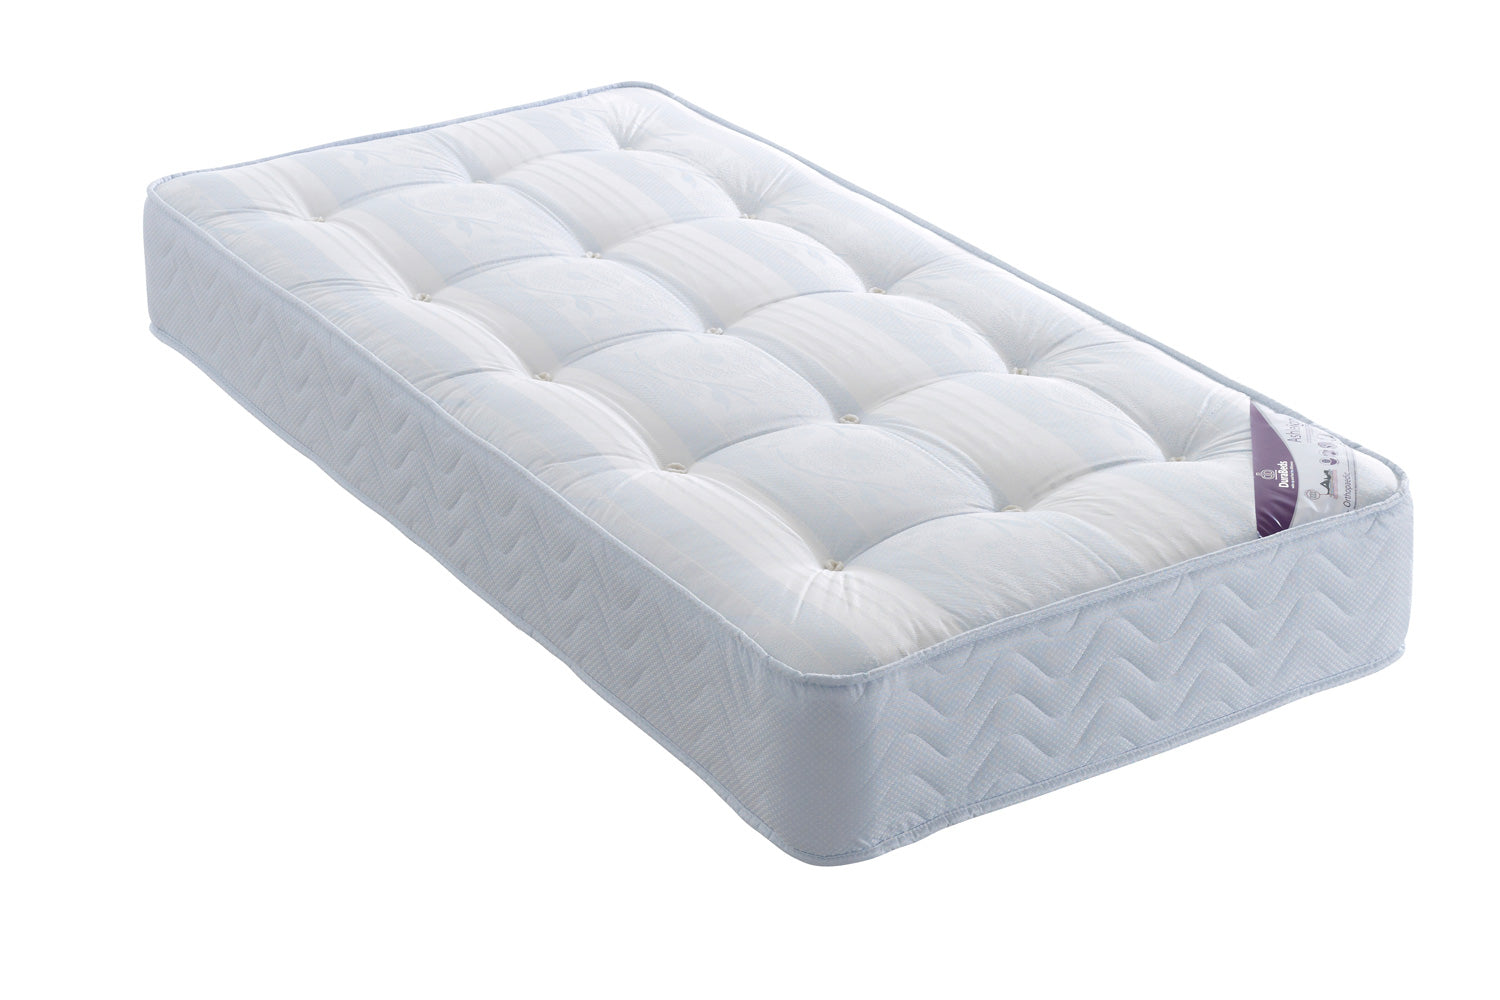 Ashleigh Divan (Mattress = Firm, Depth 24 cm)